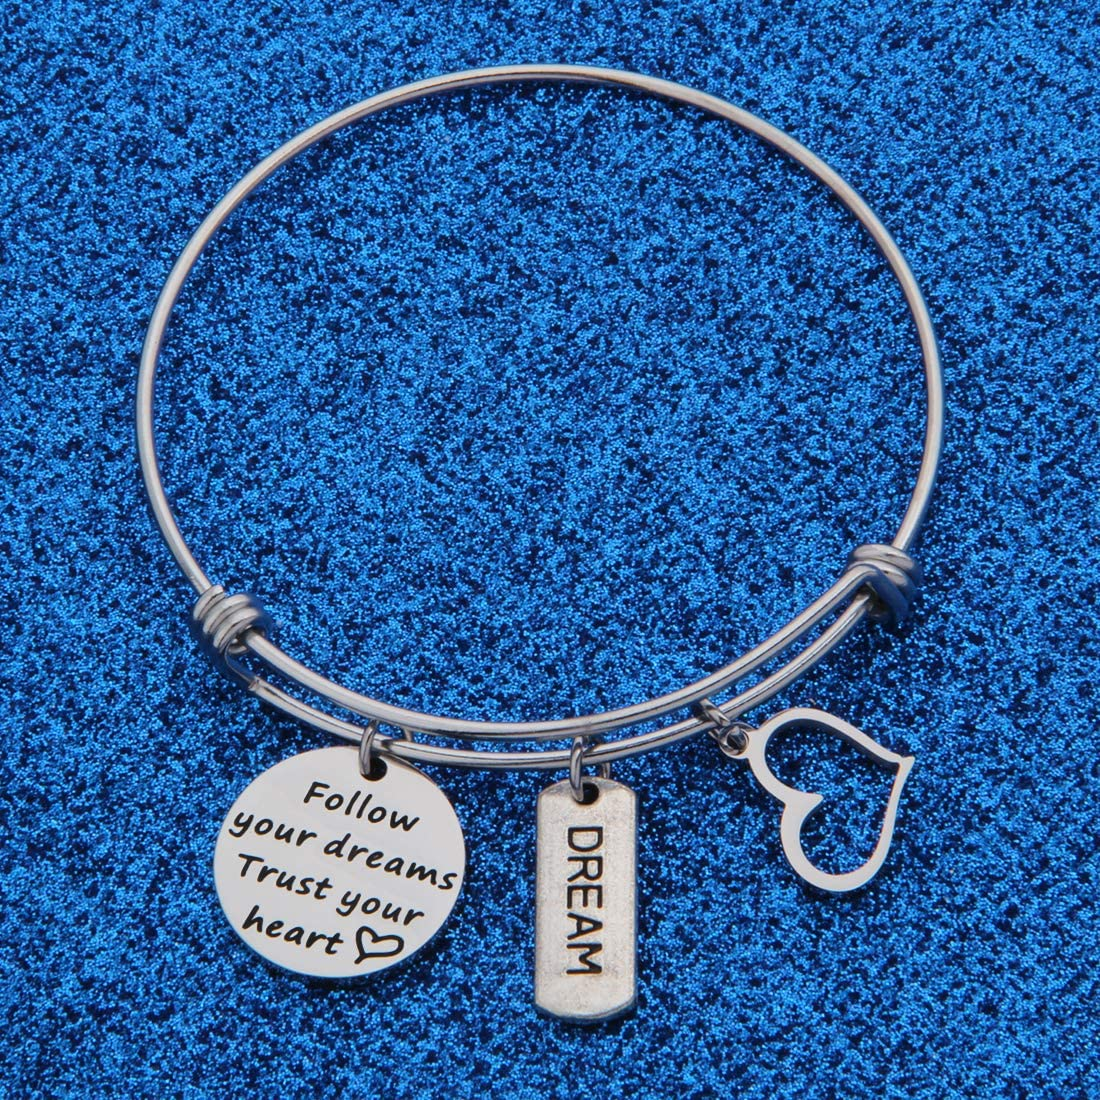 WUSUANED Follow Your Dreams Trust Your Heart Expandable Wire Bangle Bracelet Inspirational Gift for Her